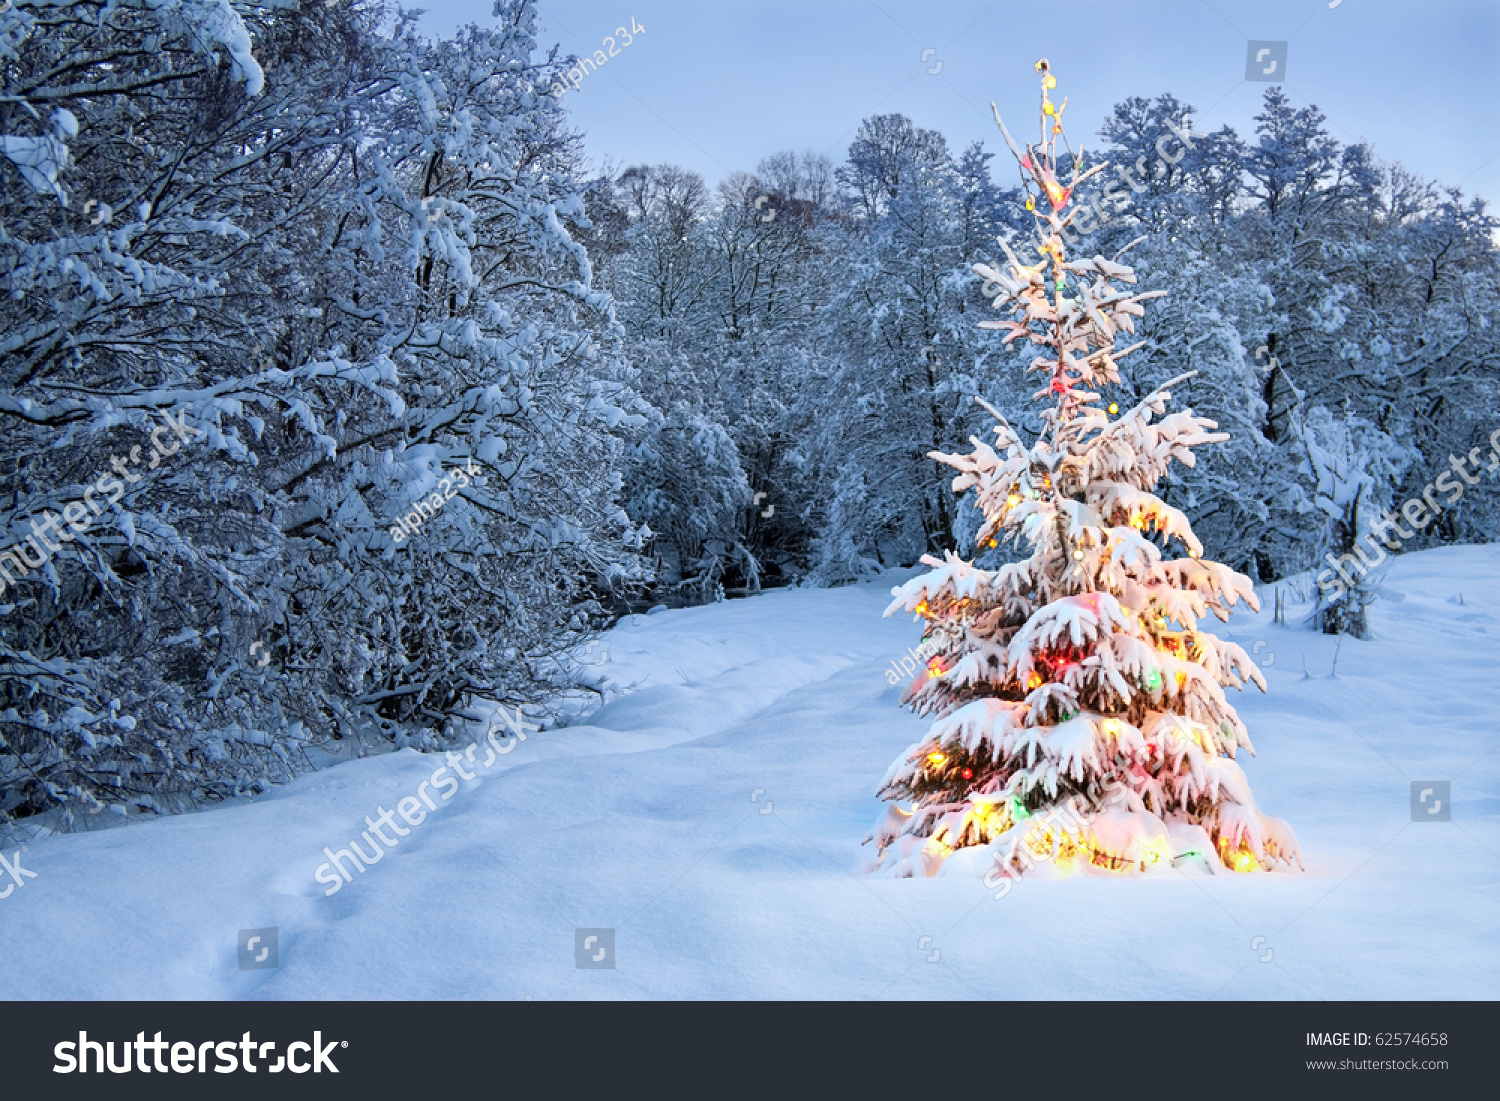 Christmas Tree In Snow With Colored Lights Stock Photo ...